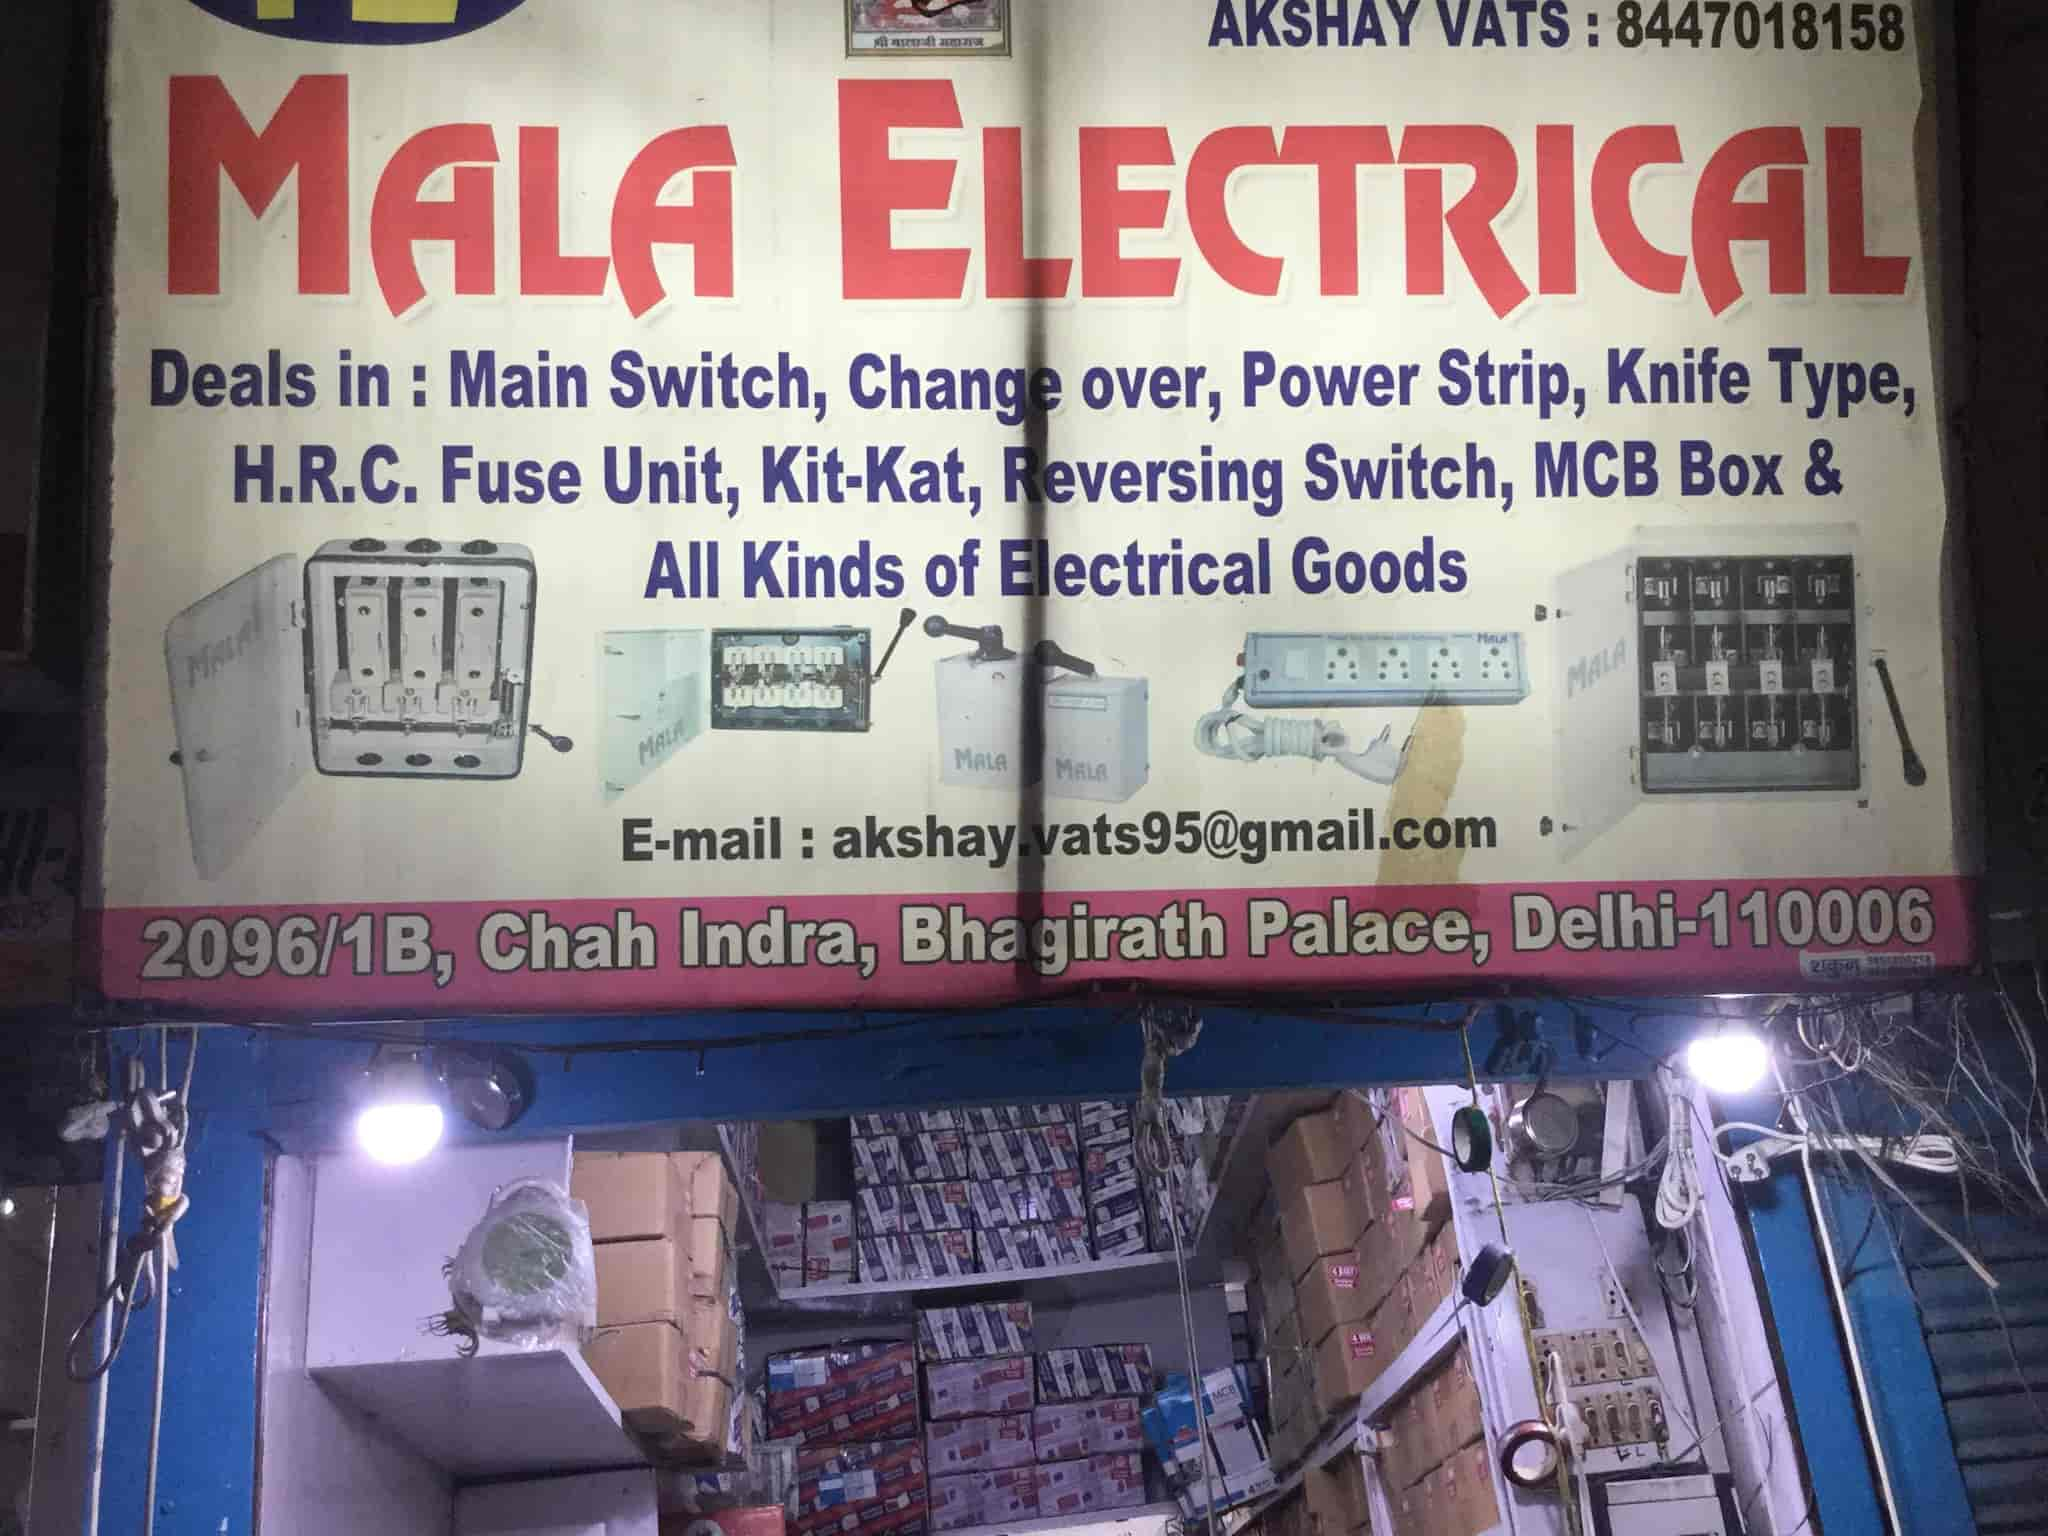 Mala Electrical Photos Chandni Chowk Delhi Pictures Images Knife Switch Fuse Box Mcb Manufacturers